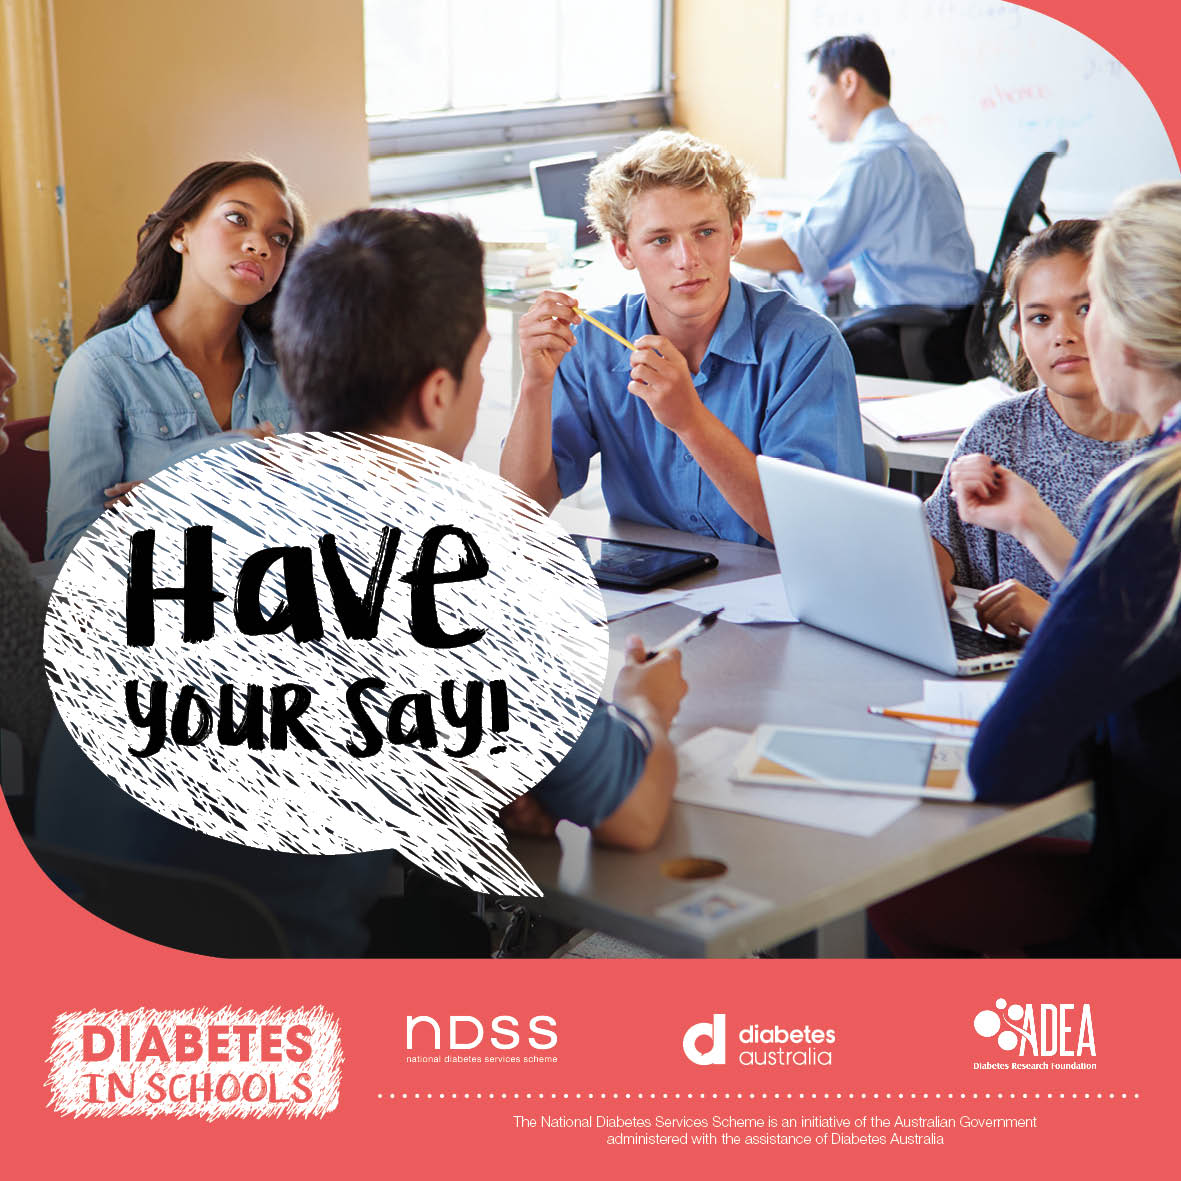 test Twitter Media - Live in #NorthernTerritory & want to have your say about #diabetesmanagement in schools? Next week we're running a series of workshops for parents & school staff. Register here: https://t.co/qGX7NAYGZ7 Can't make a workshop? Take a 15 min survey on same link above #Darwin #type1 https://t.co/lmgumc0ODo